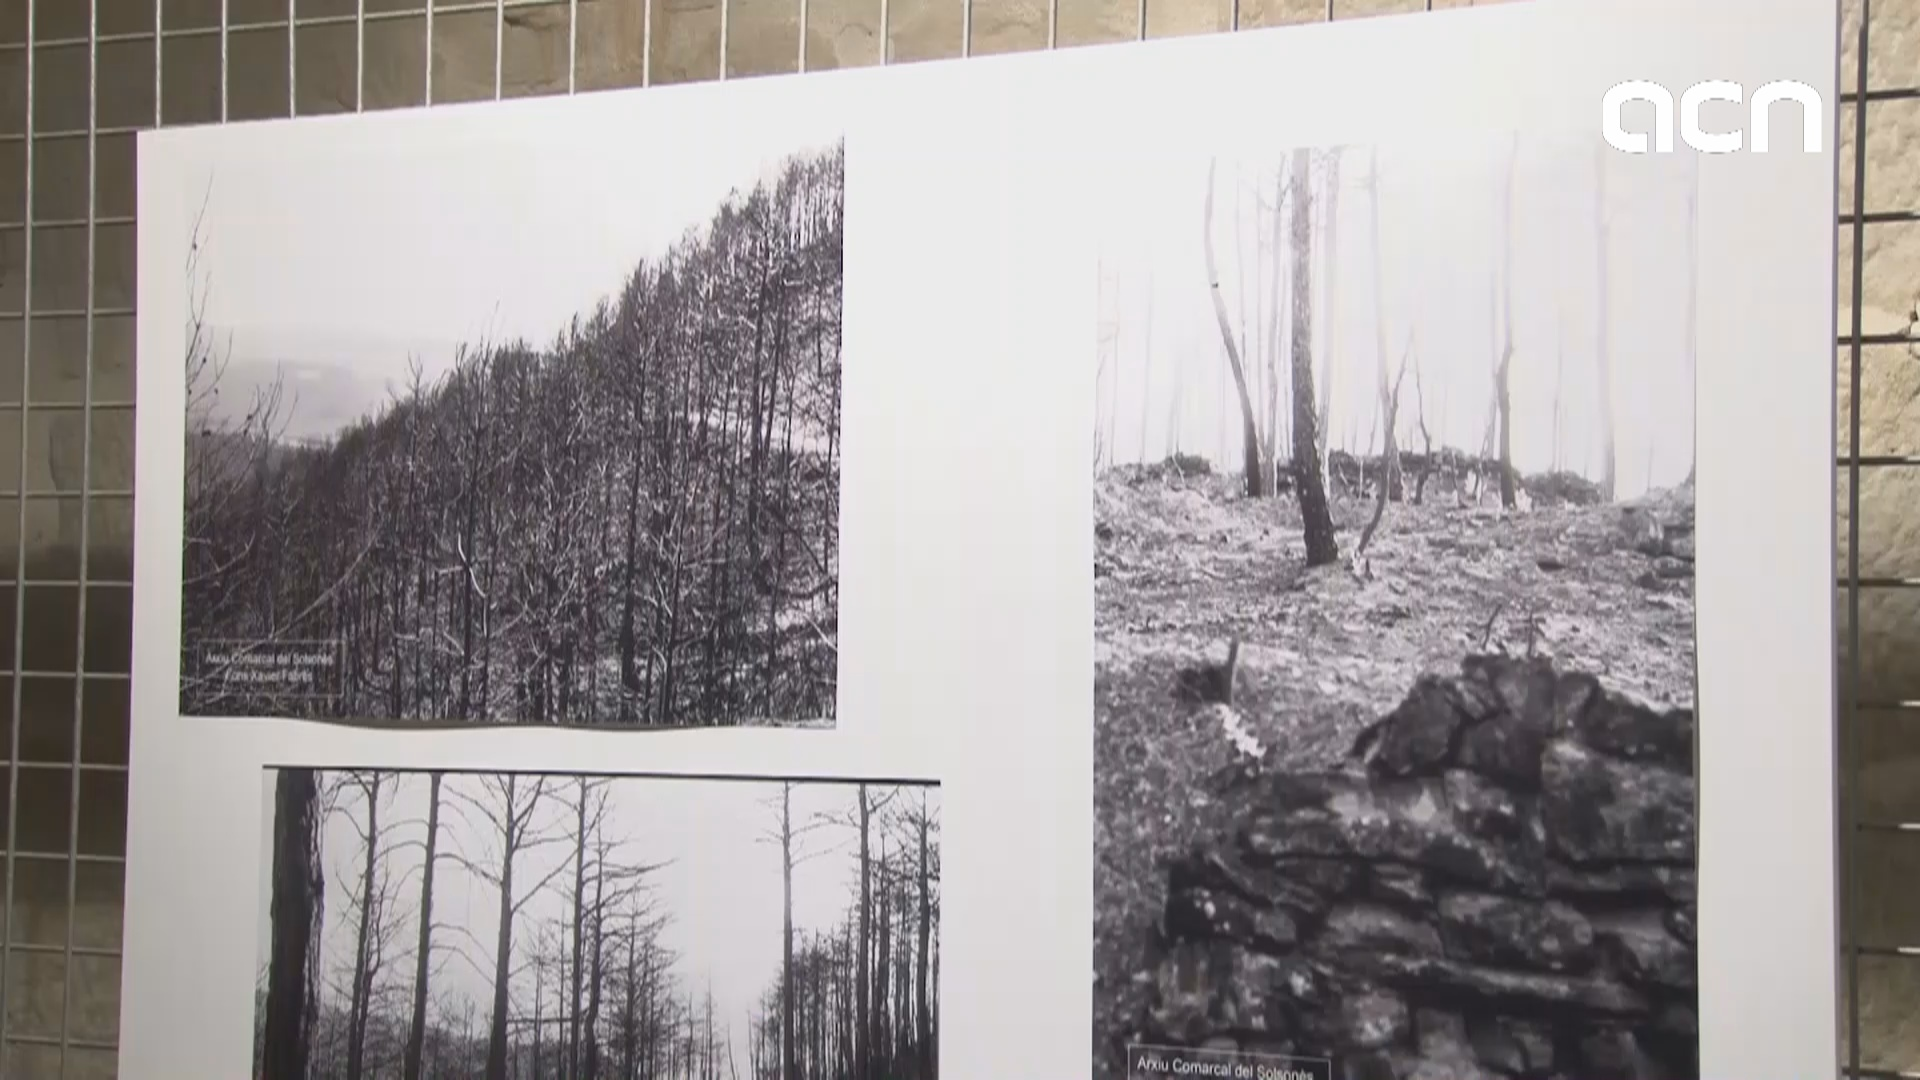 Anniversary of the 1998 fire that destroyed 24,000 hectares